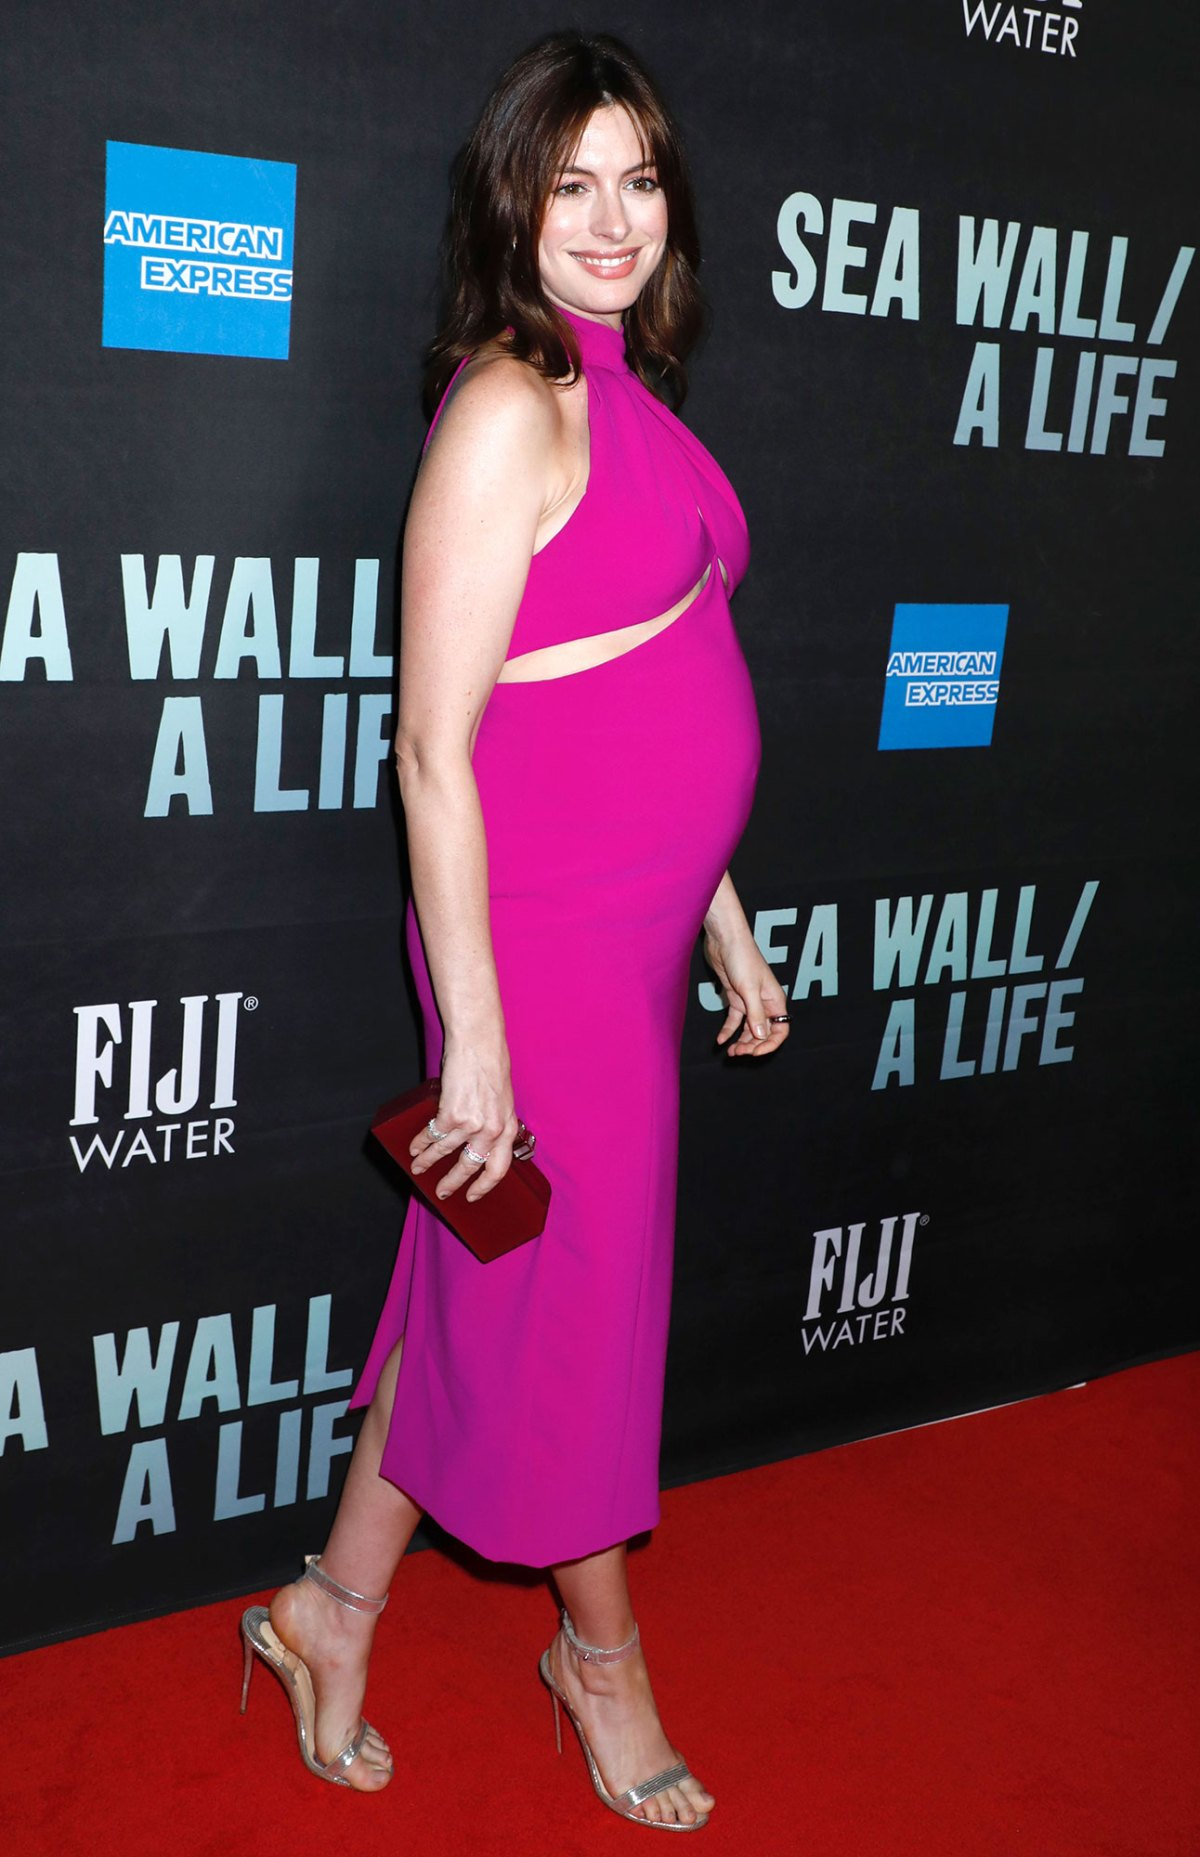 Anne Hathaway Attends 1st Red Carpet Since Pregnancy Reveal Pics